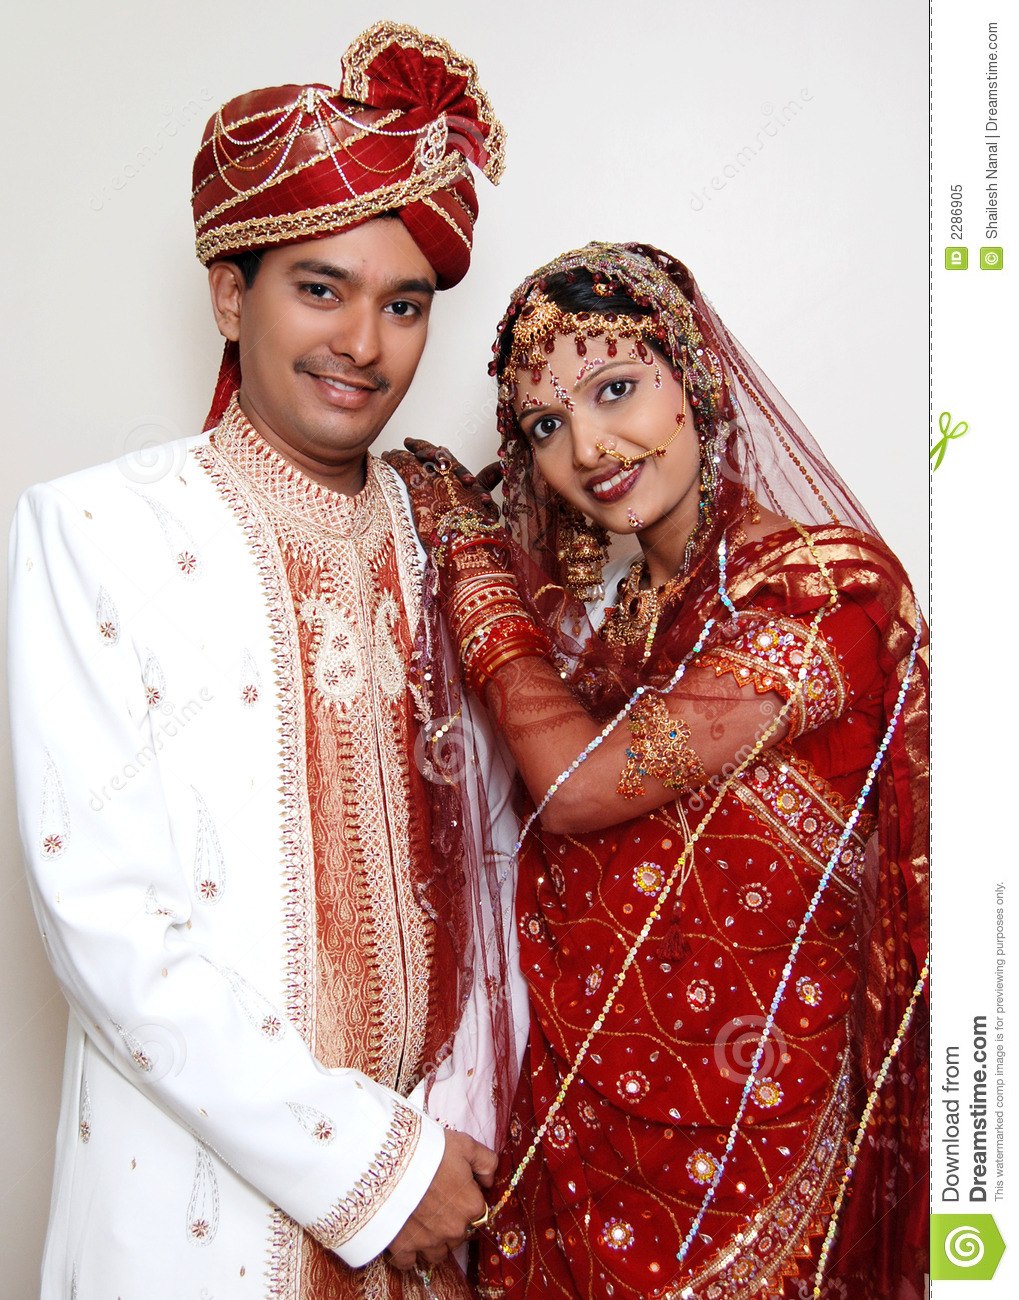 Cute Indian Married Couple Wallpaper Beautiful Couple Stock Image Image Of Marital People